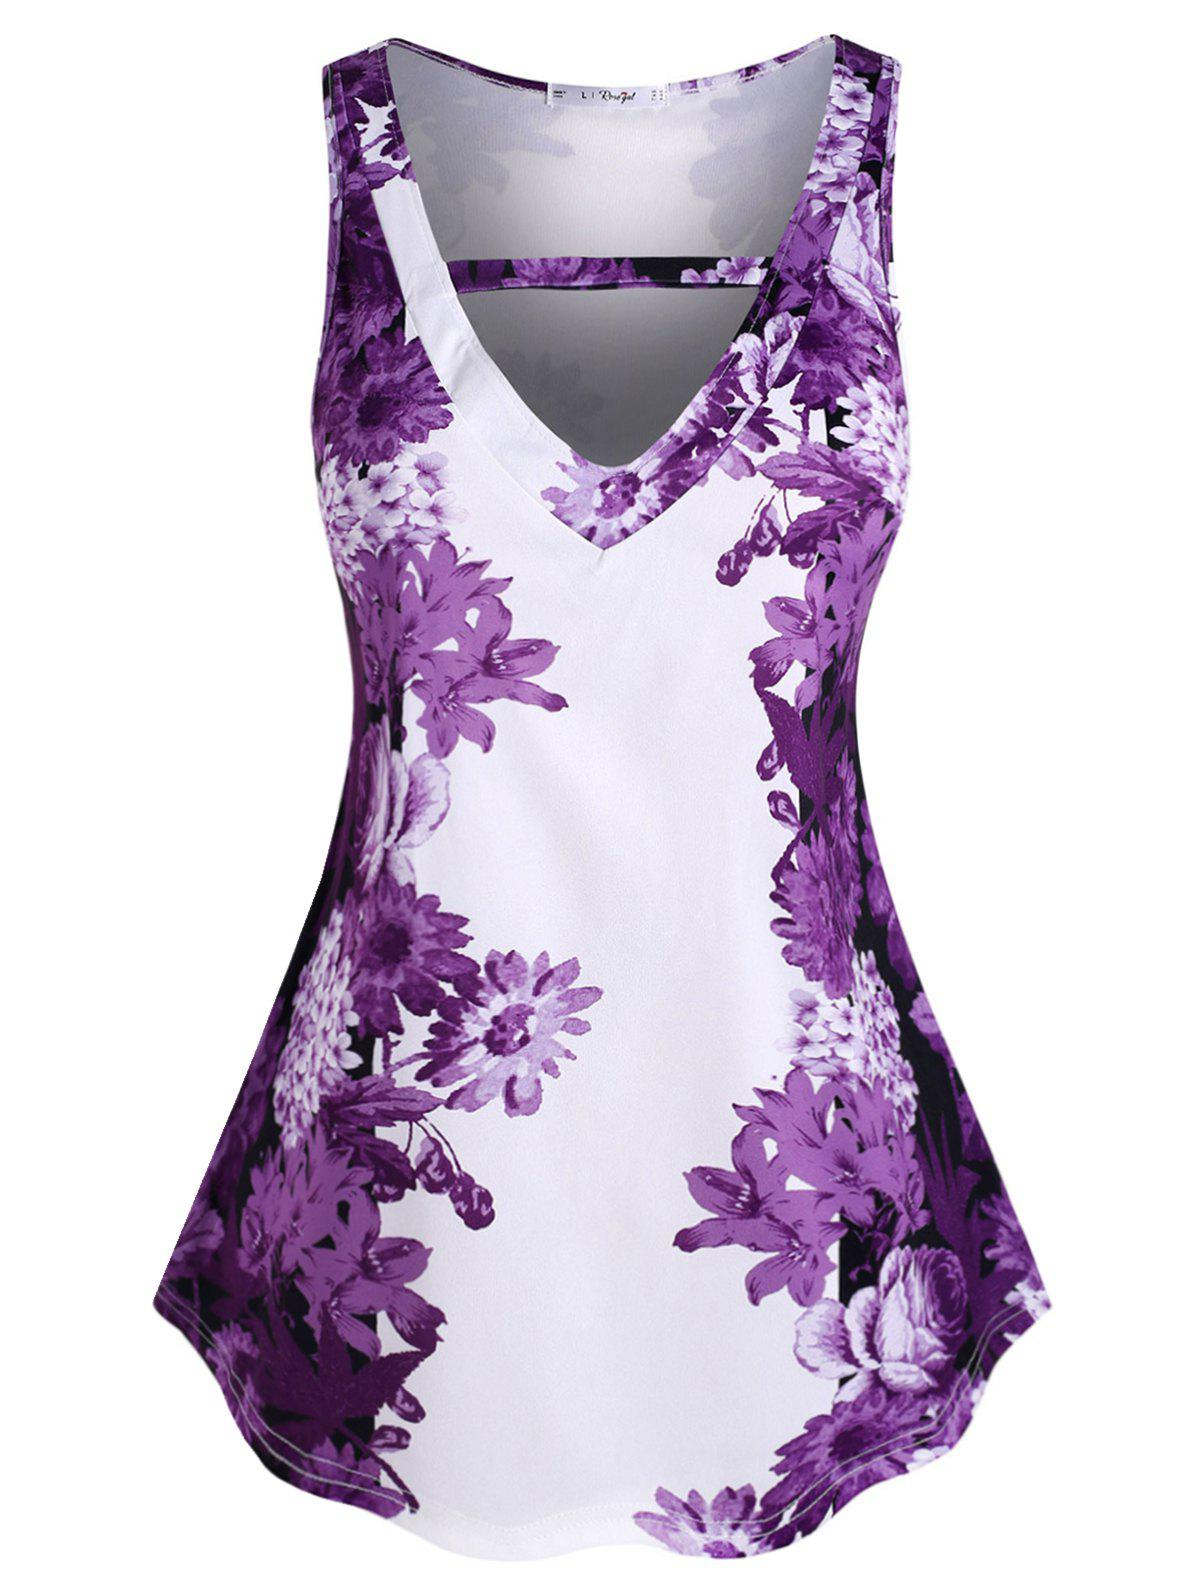 Plus Size Sleeveless Floral Print Tunic Top - DARK ORCHID 3X